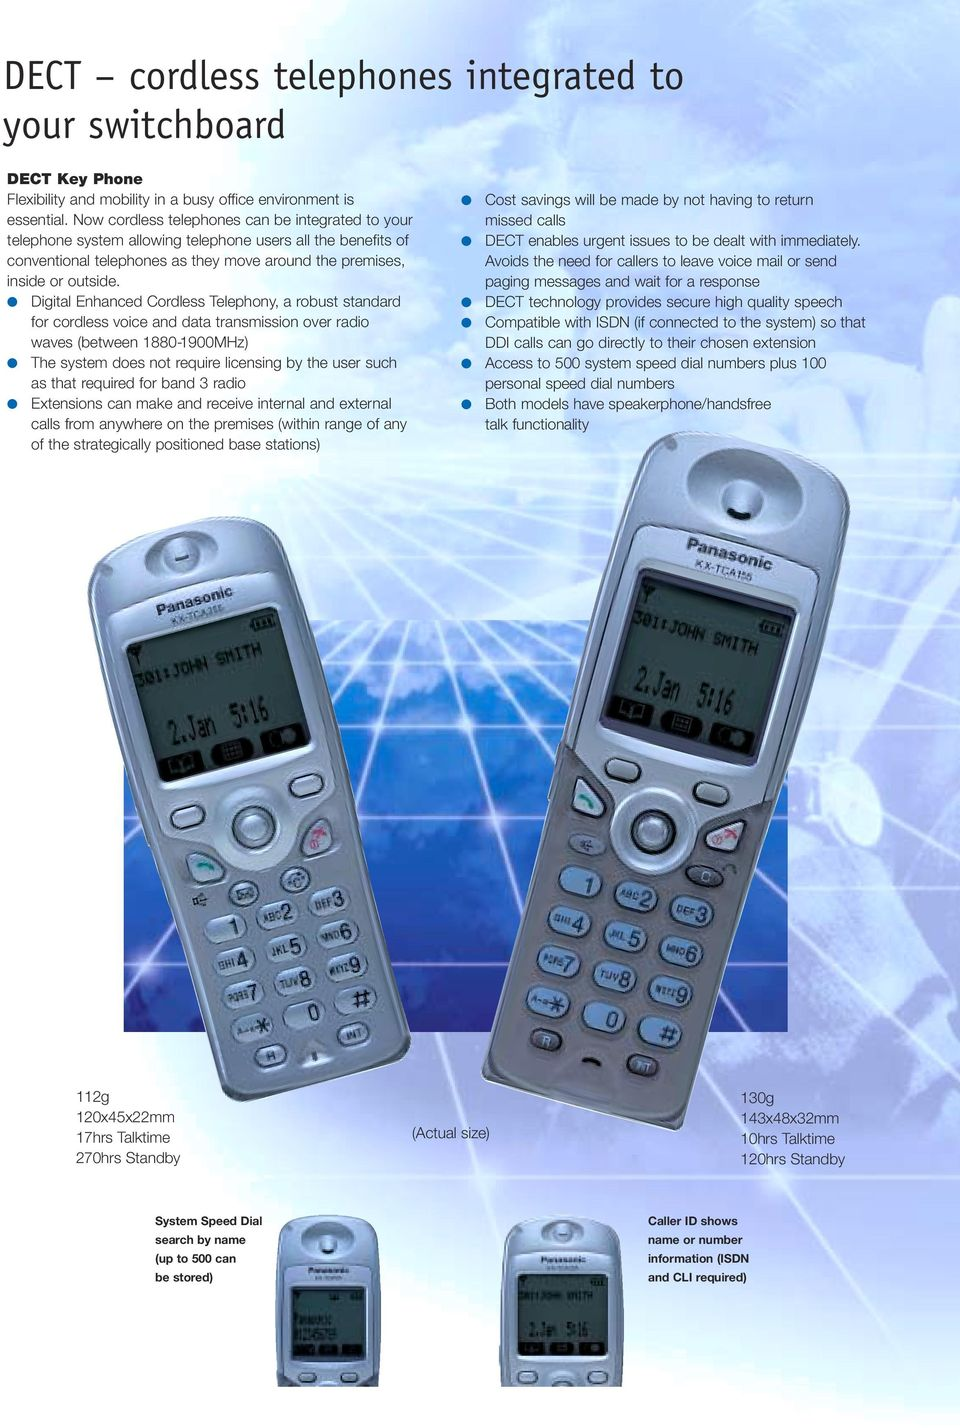 Digital Enhanced Cordless Telephony, a robust standard for cordless voice and data transmission over radio waves (between 1880-1900MHz) The system does not require licensing by the user such as that